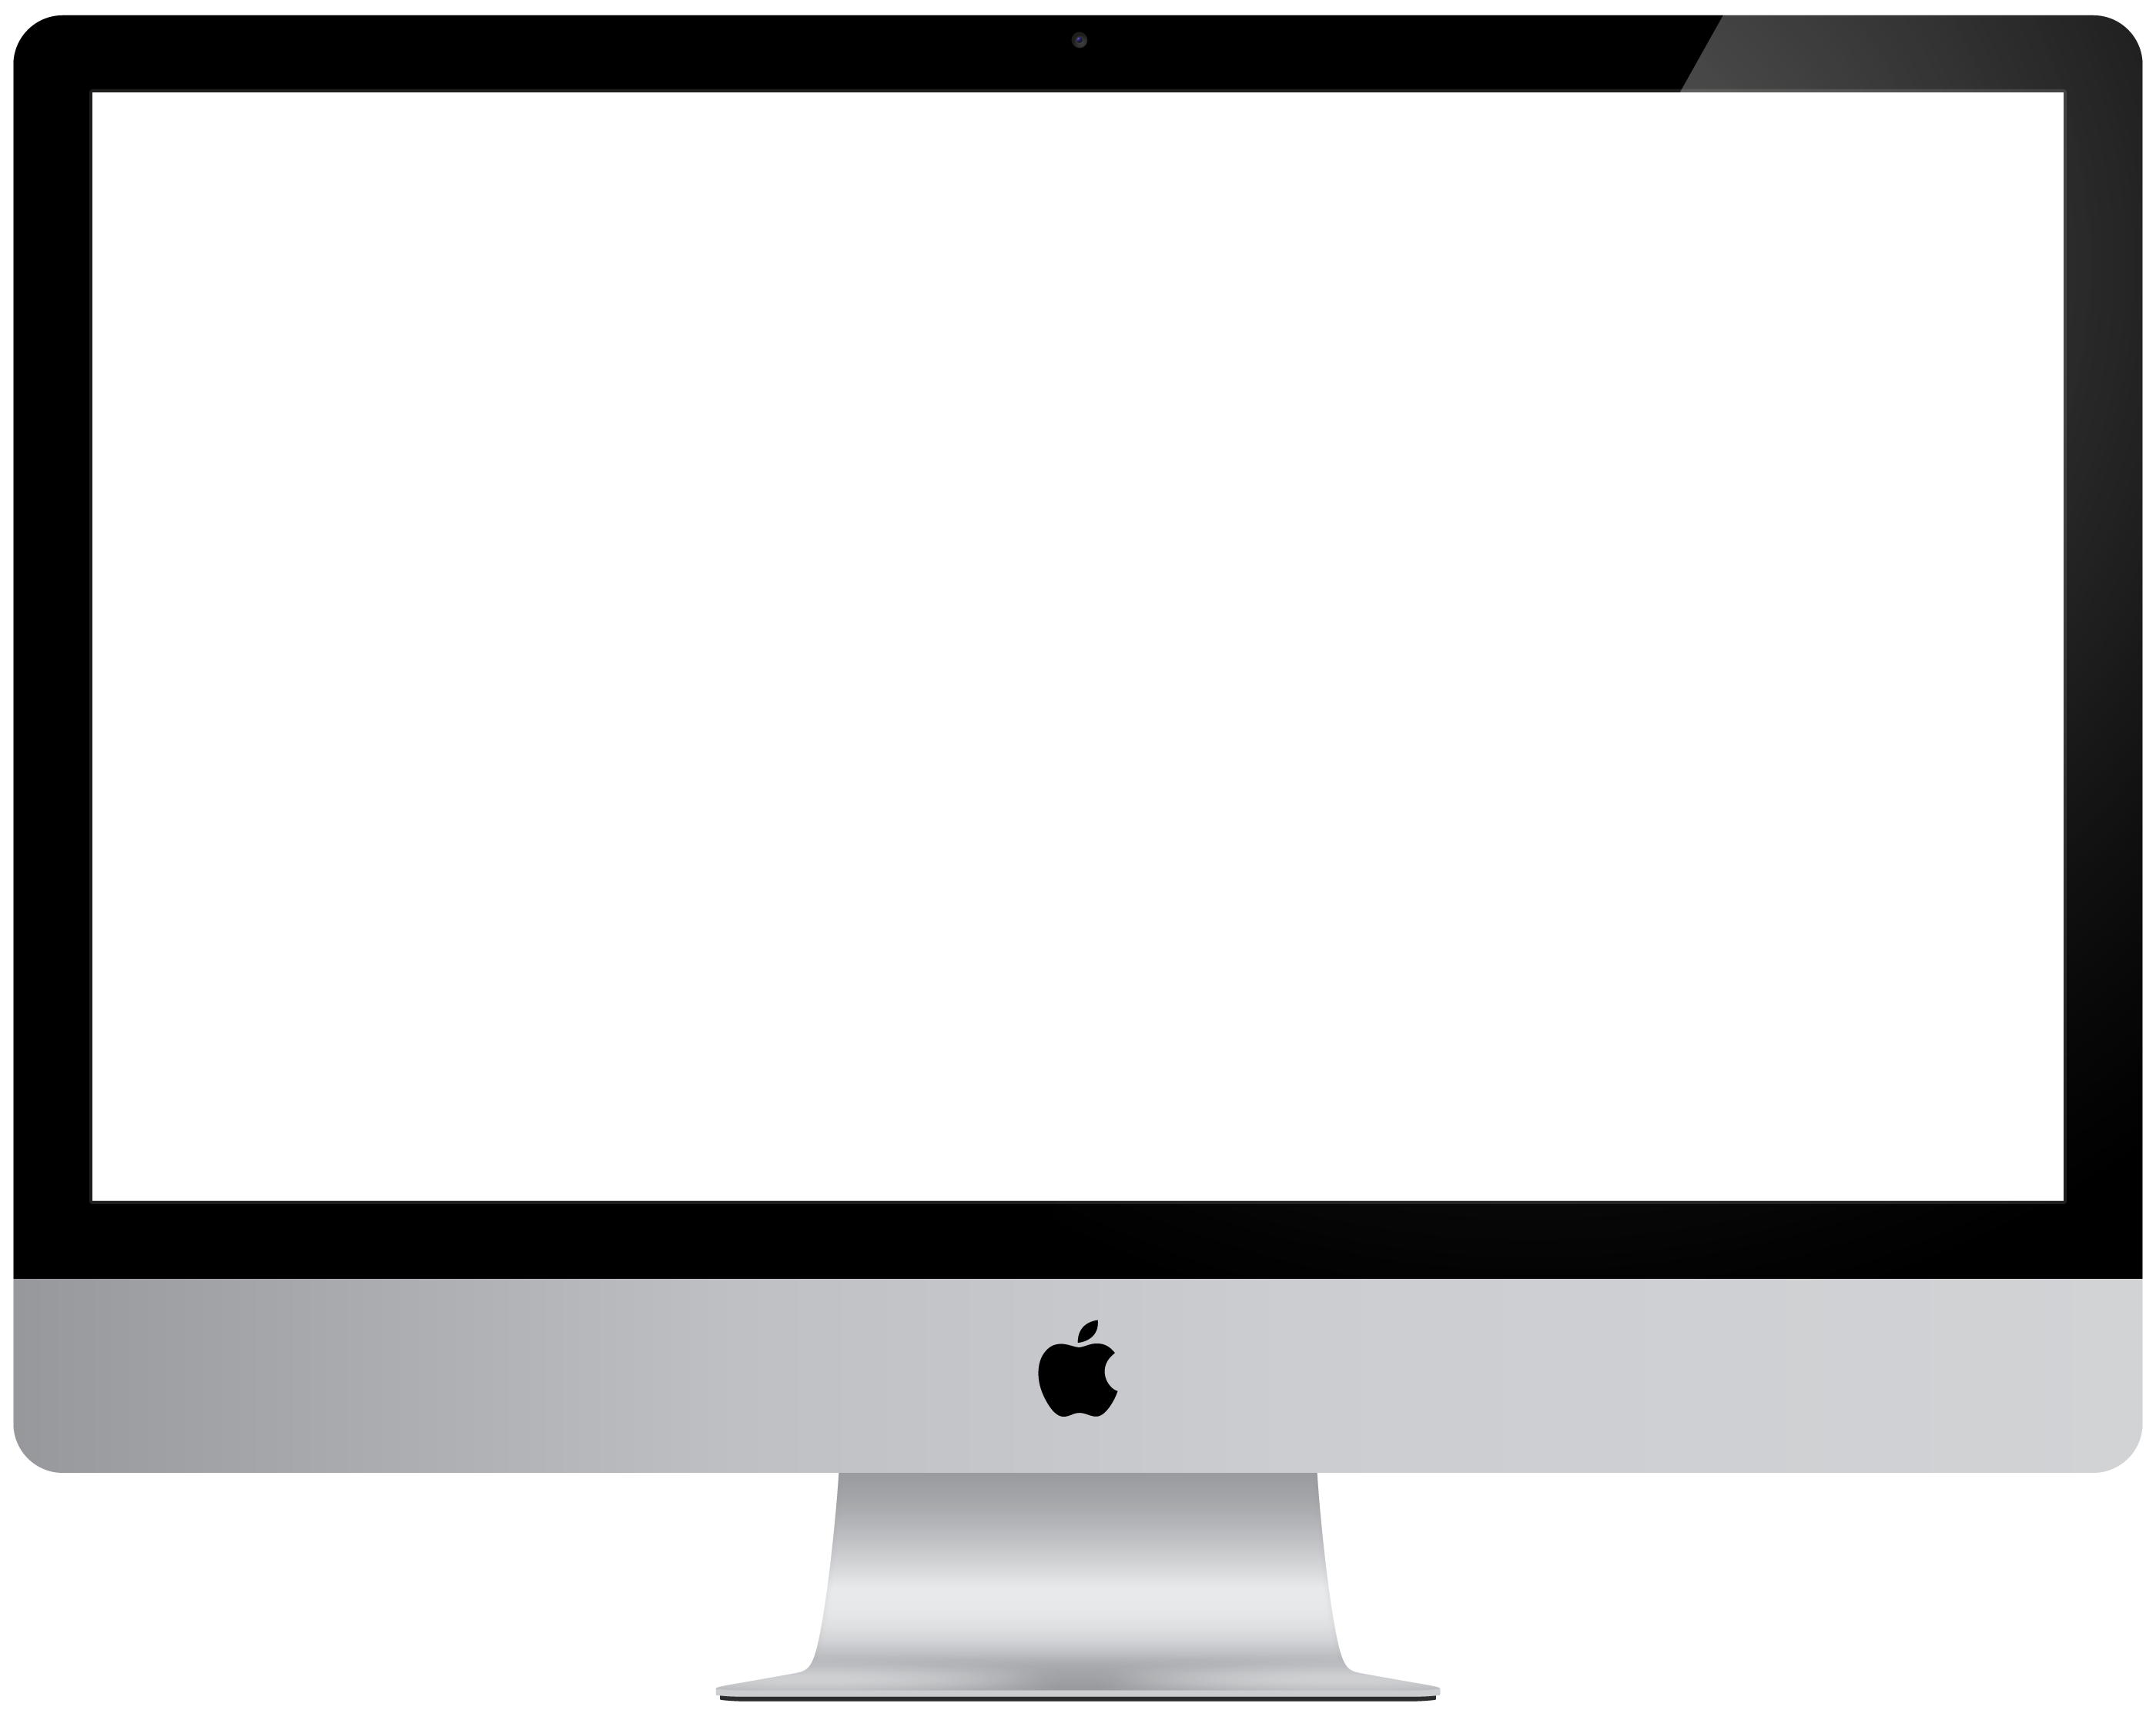 Conquering And Flat Macbook Transparent Image image #47617